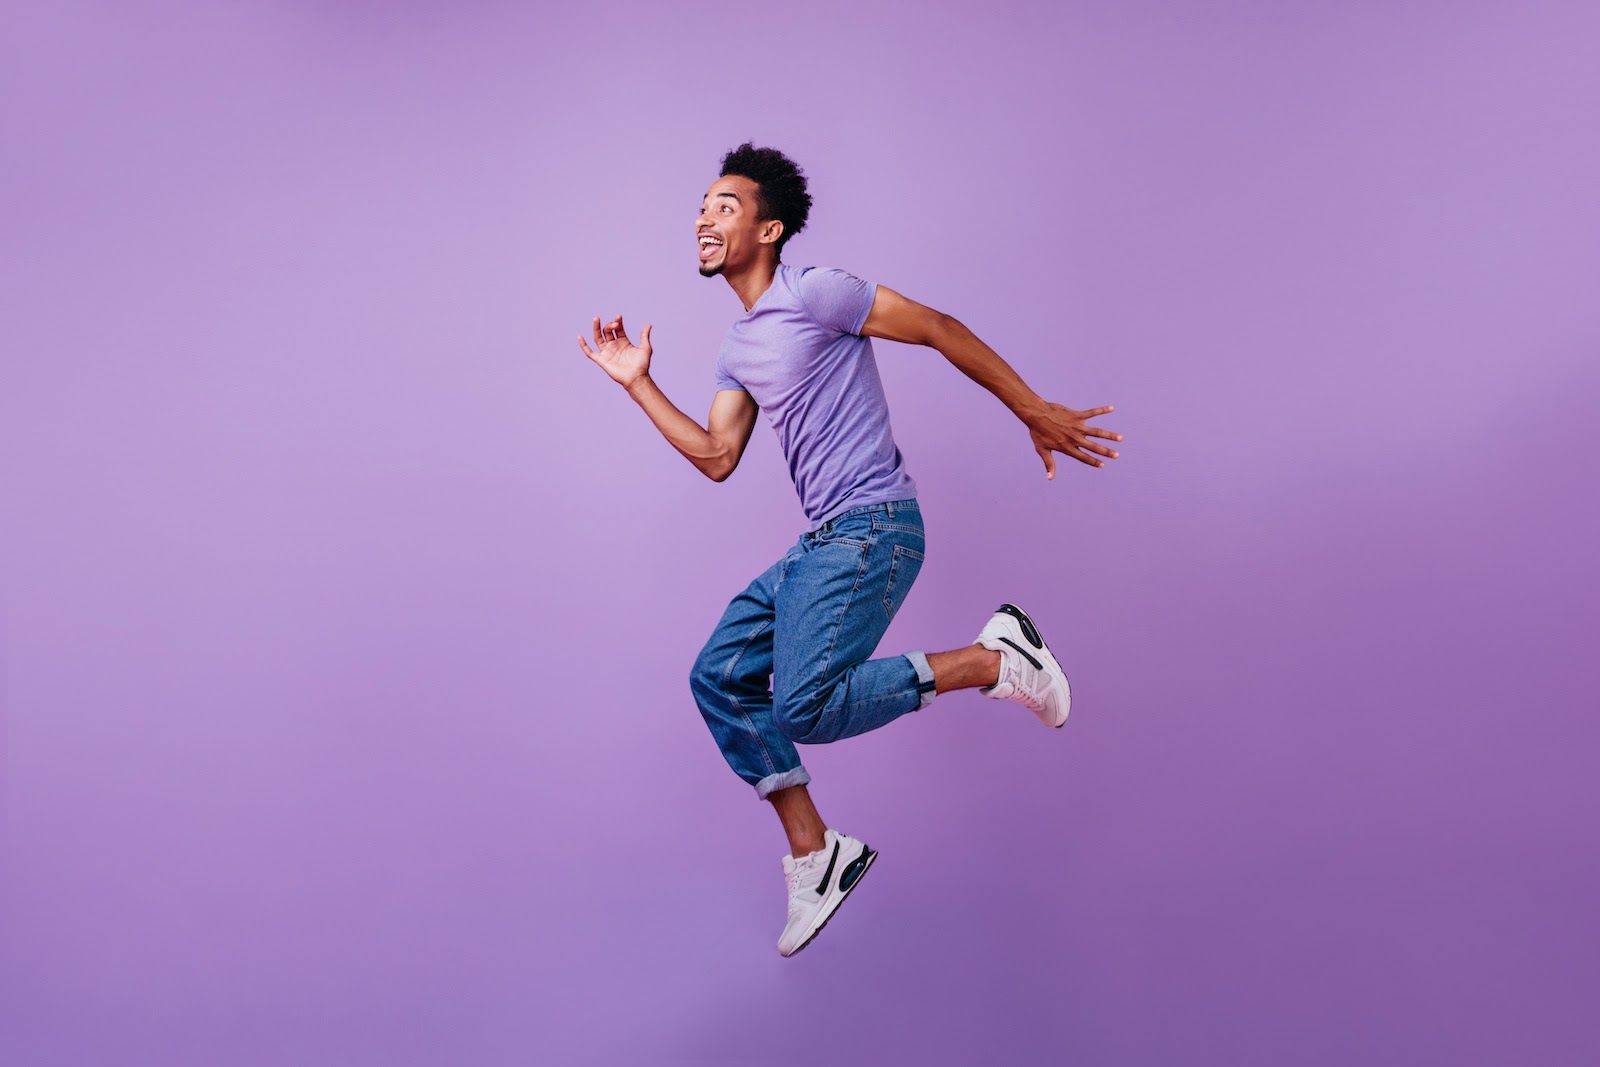 A man jumps in the air, figuratively launching his career with an office administration course